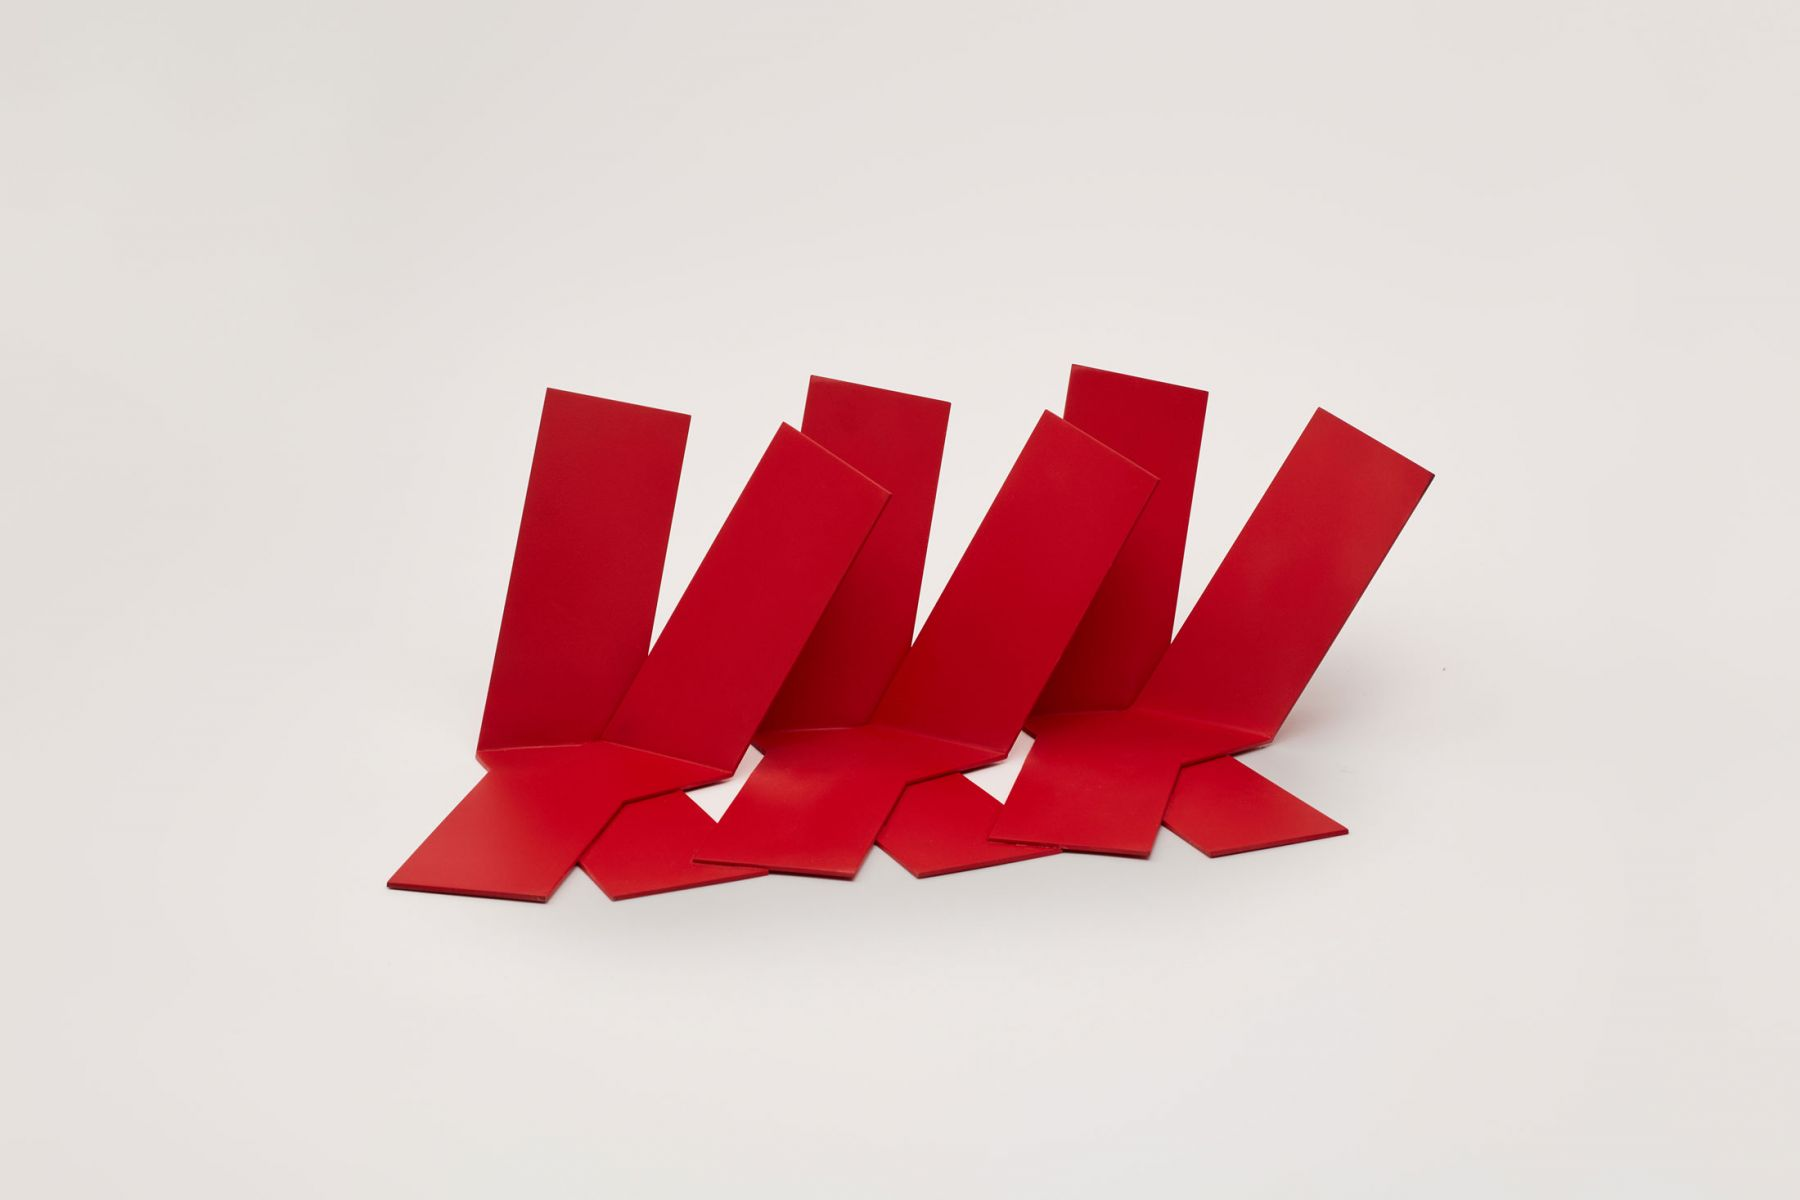 Phillip King, Slant (maquette), 2013